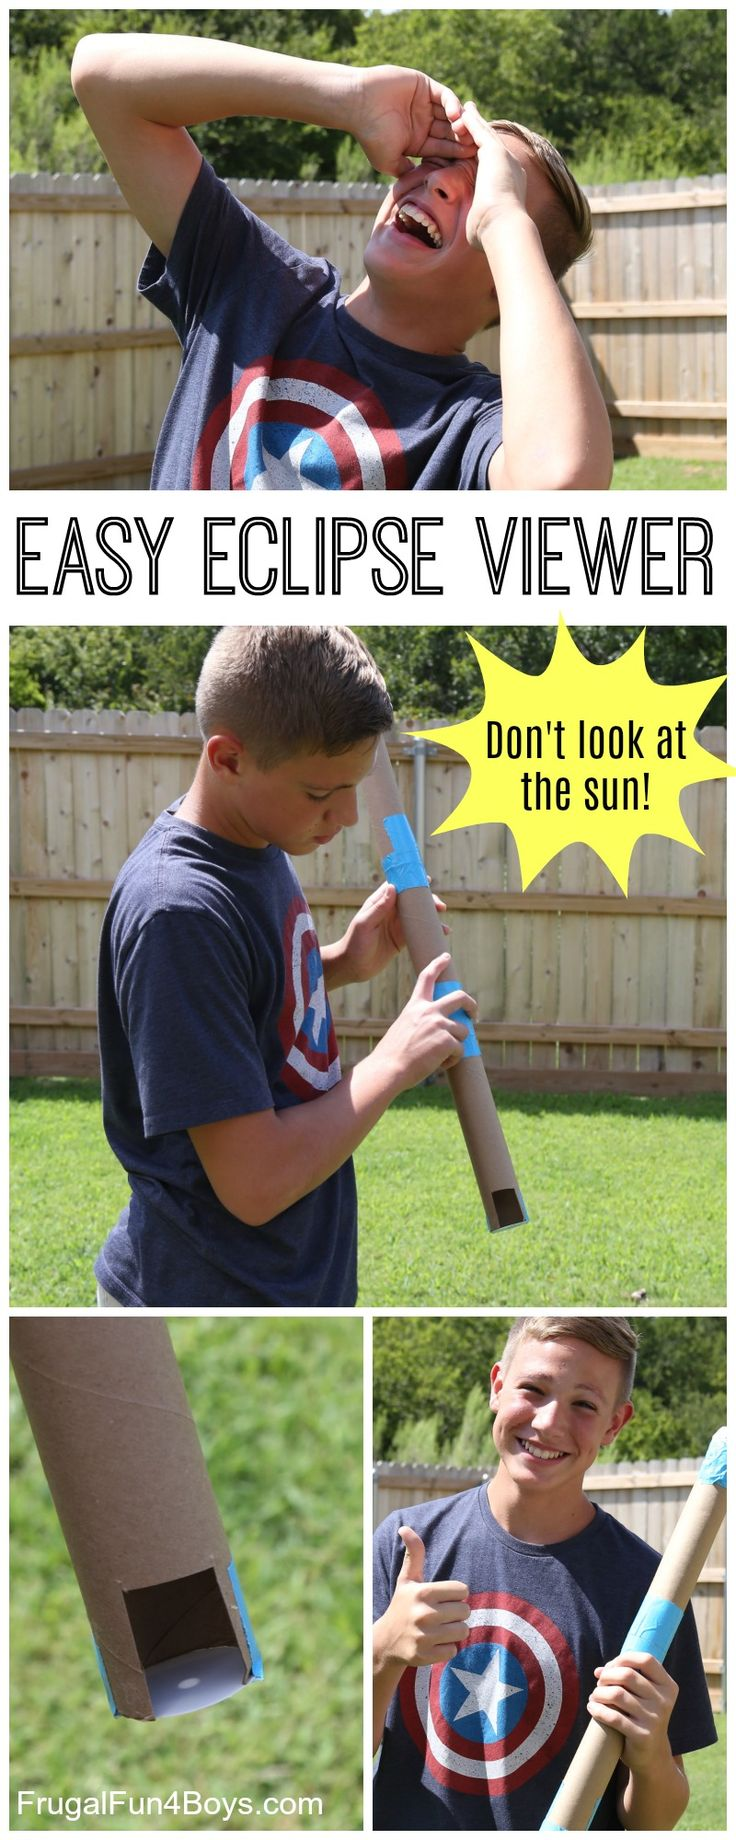 Make an Easy and Safe Pinhole Eclipse Viewer - View the solar eclipse without looking at the sun